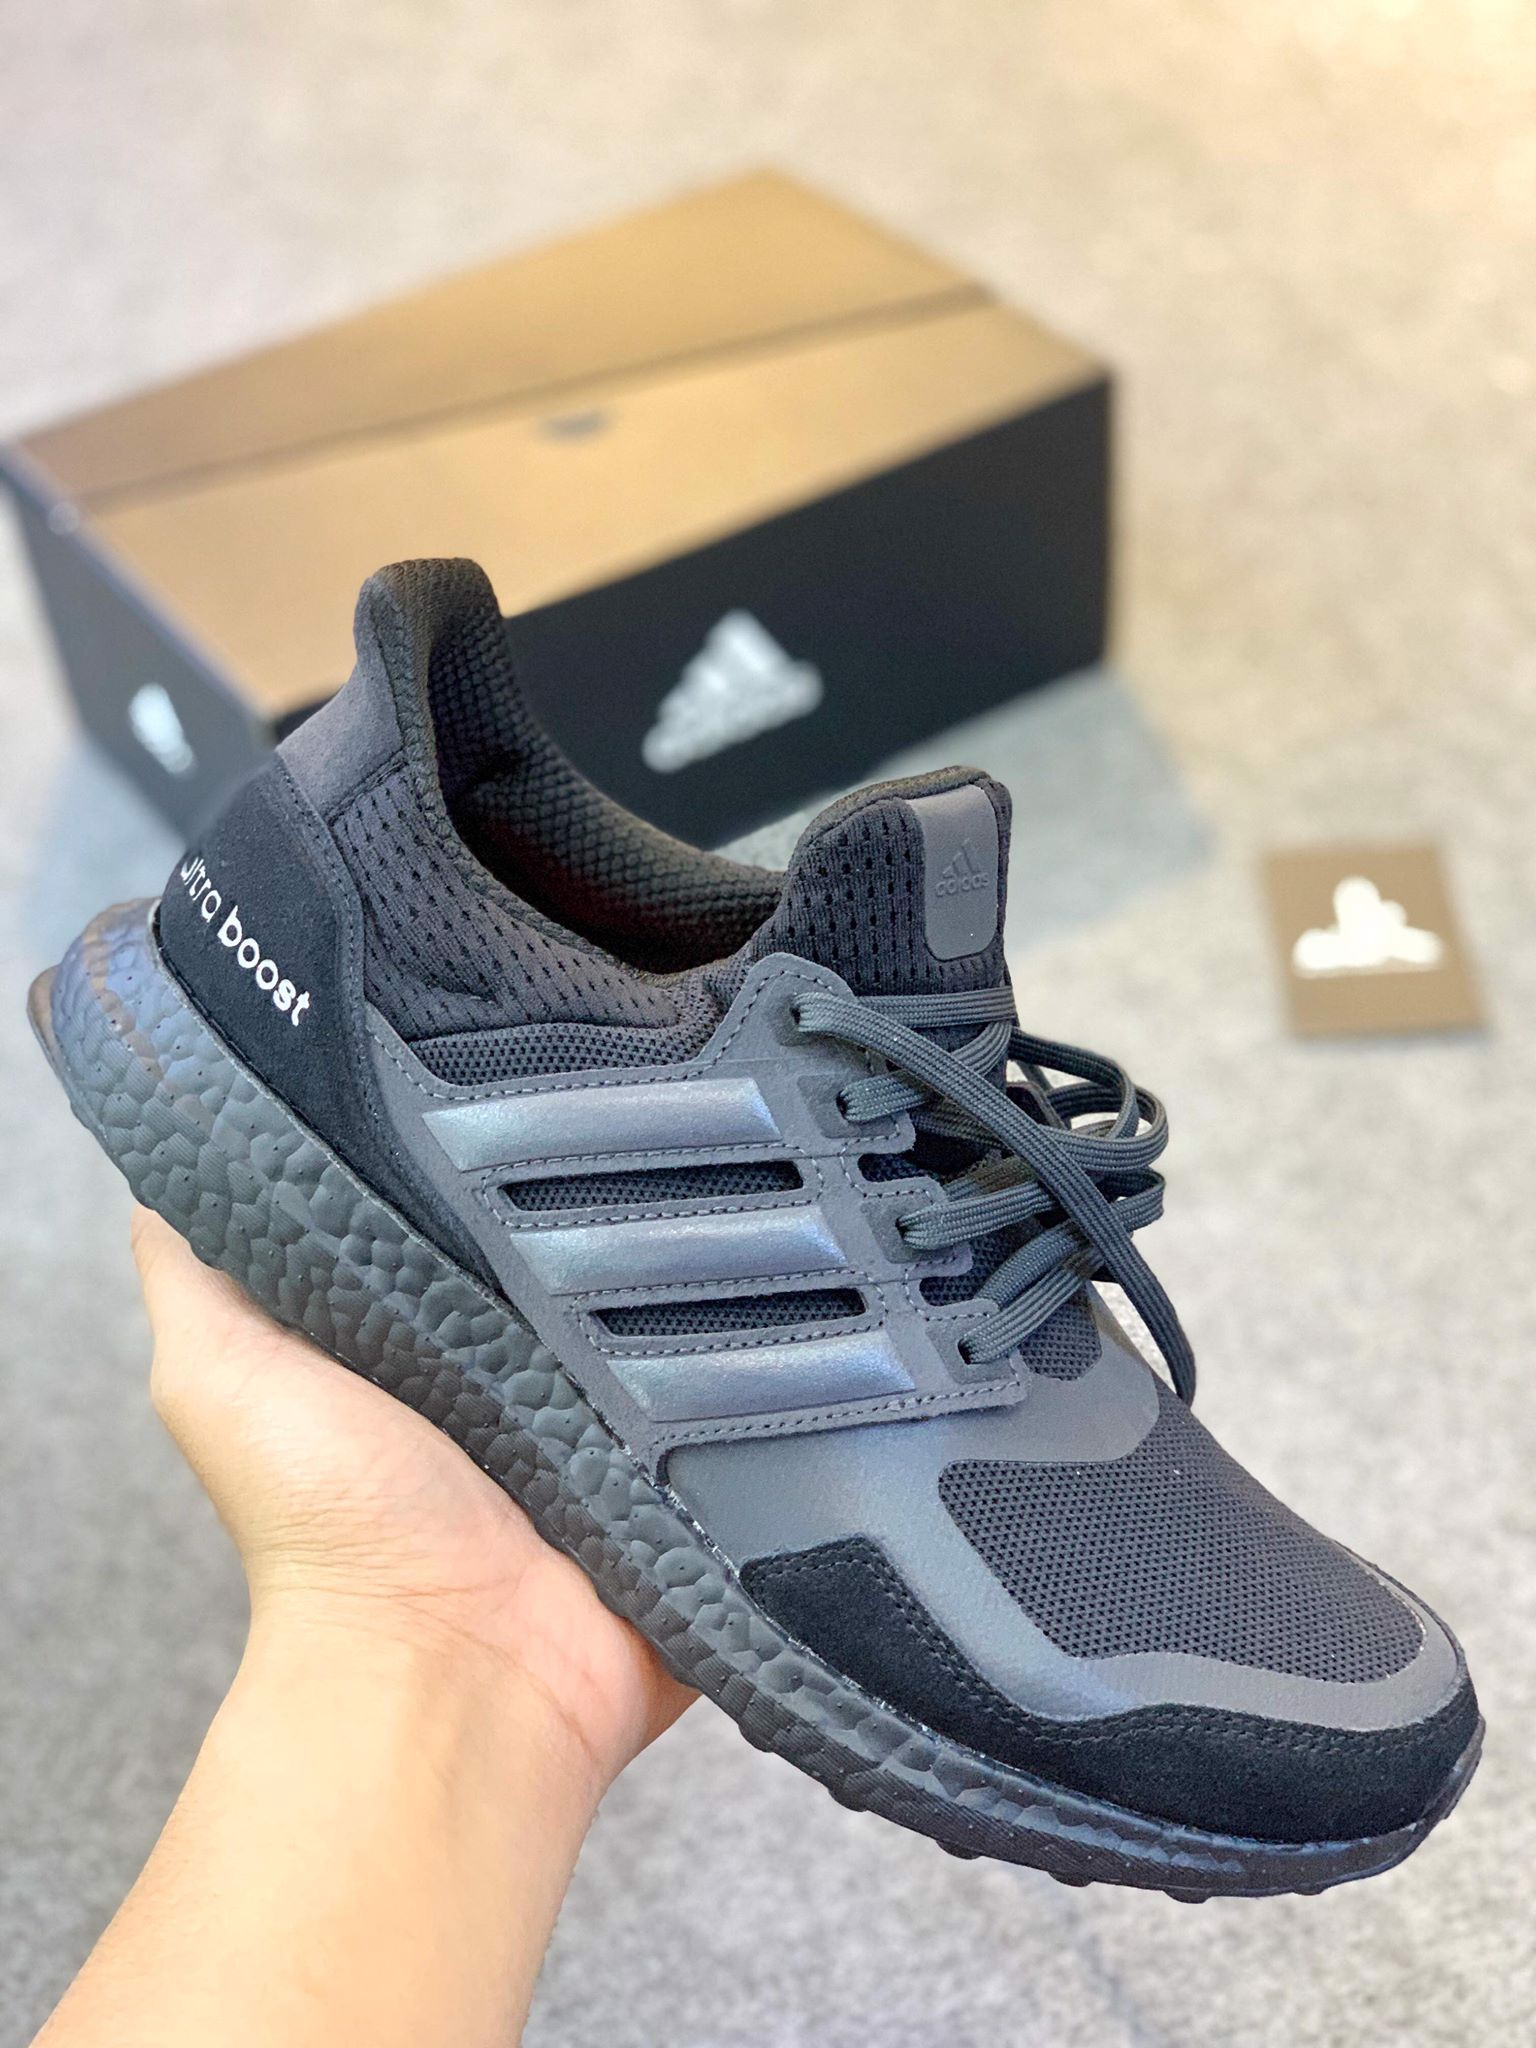 EF1361 - Ultra Boost S&L All Black Carbon